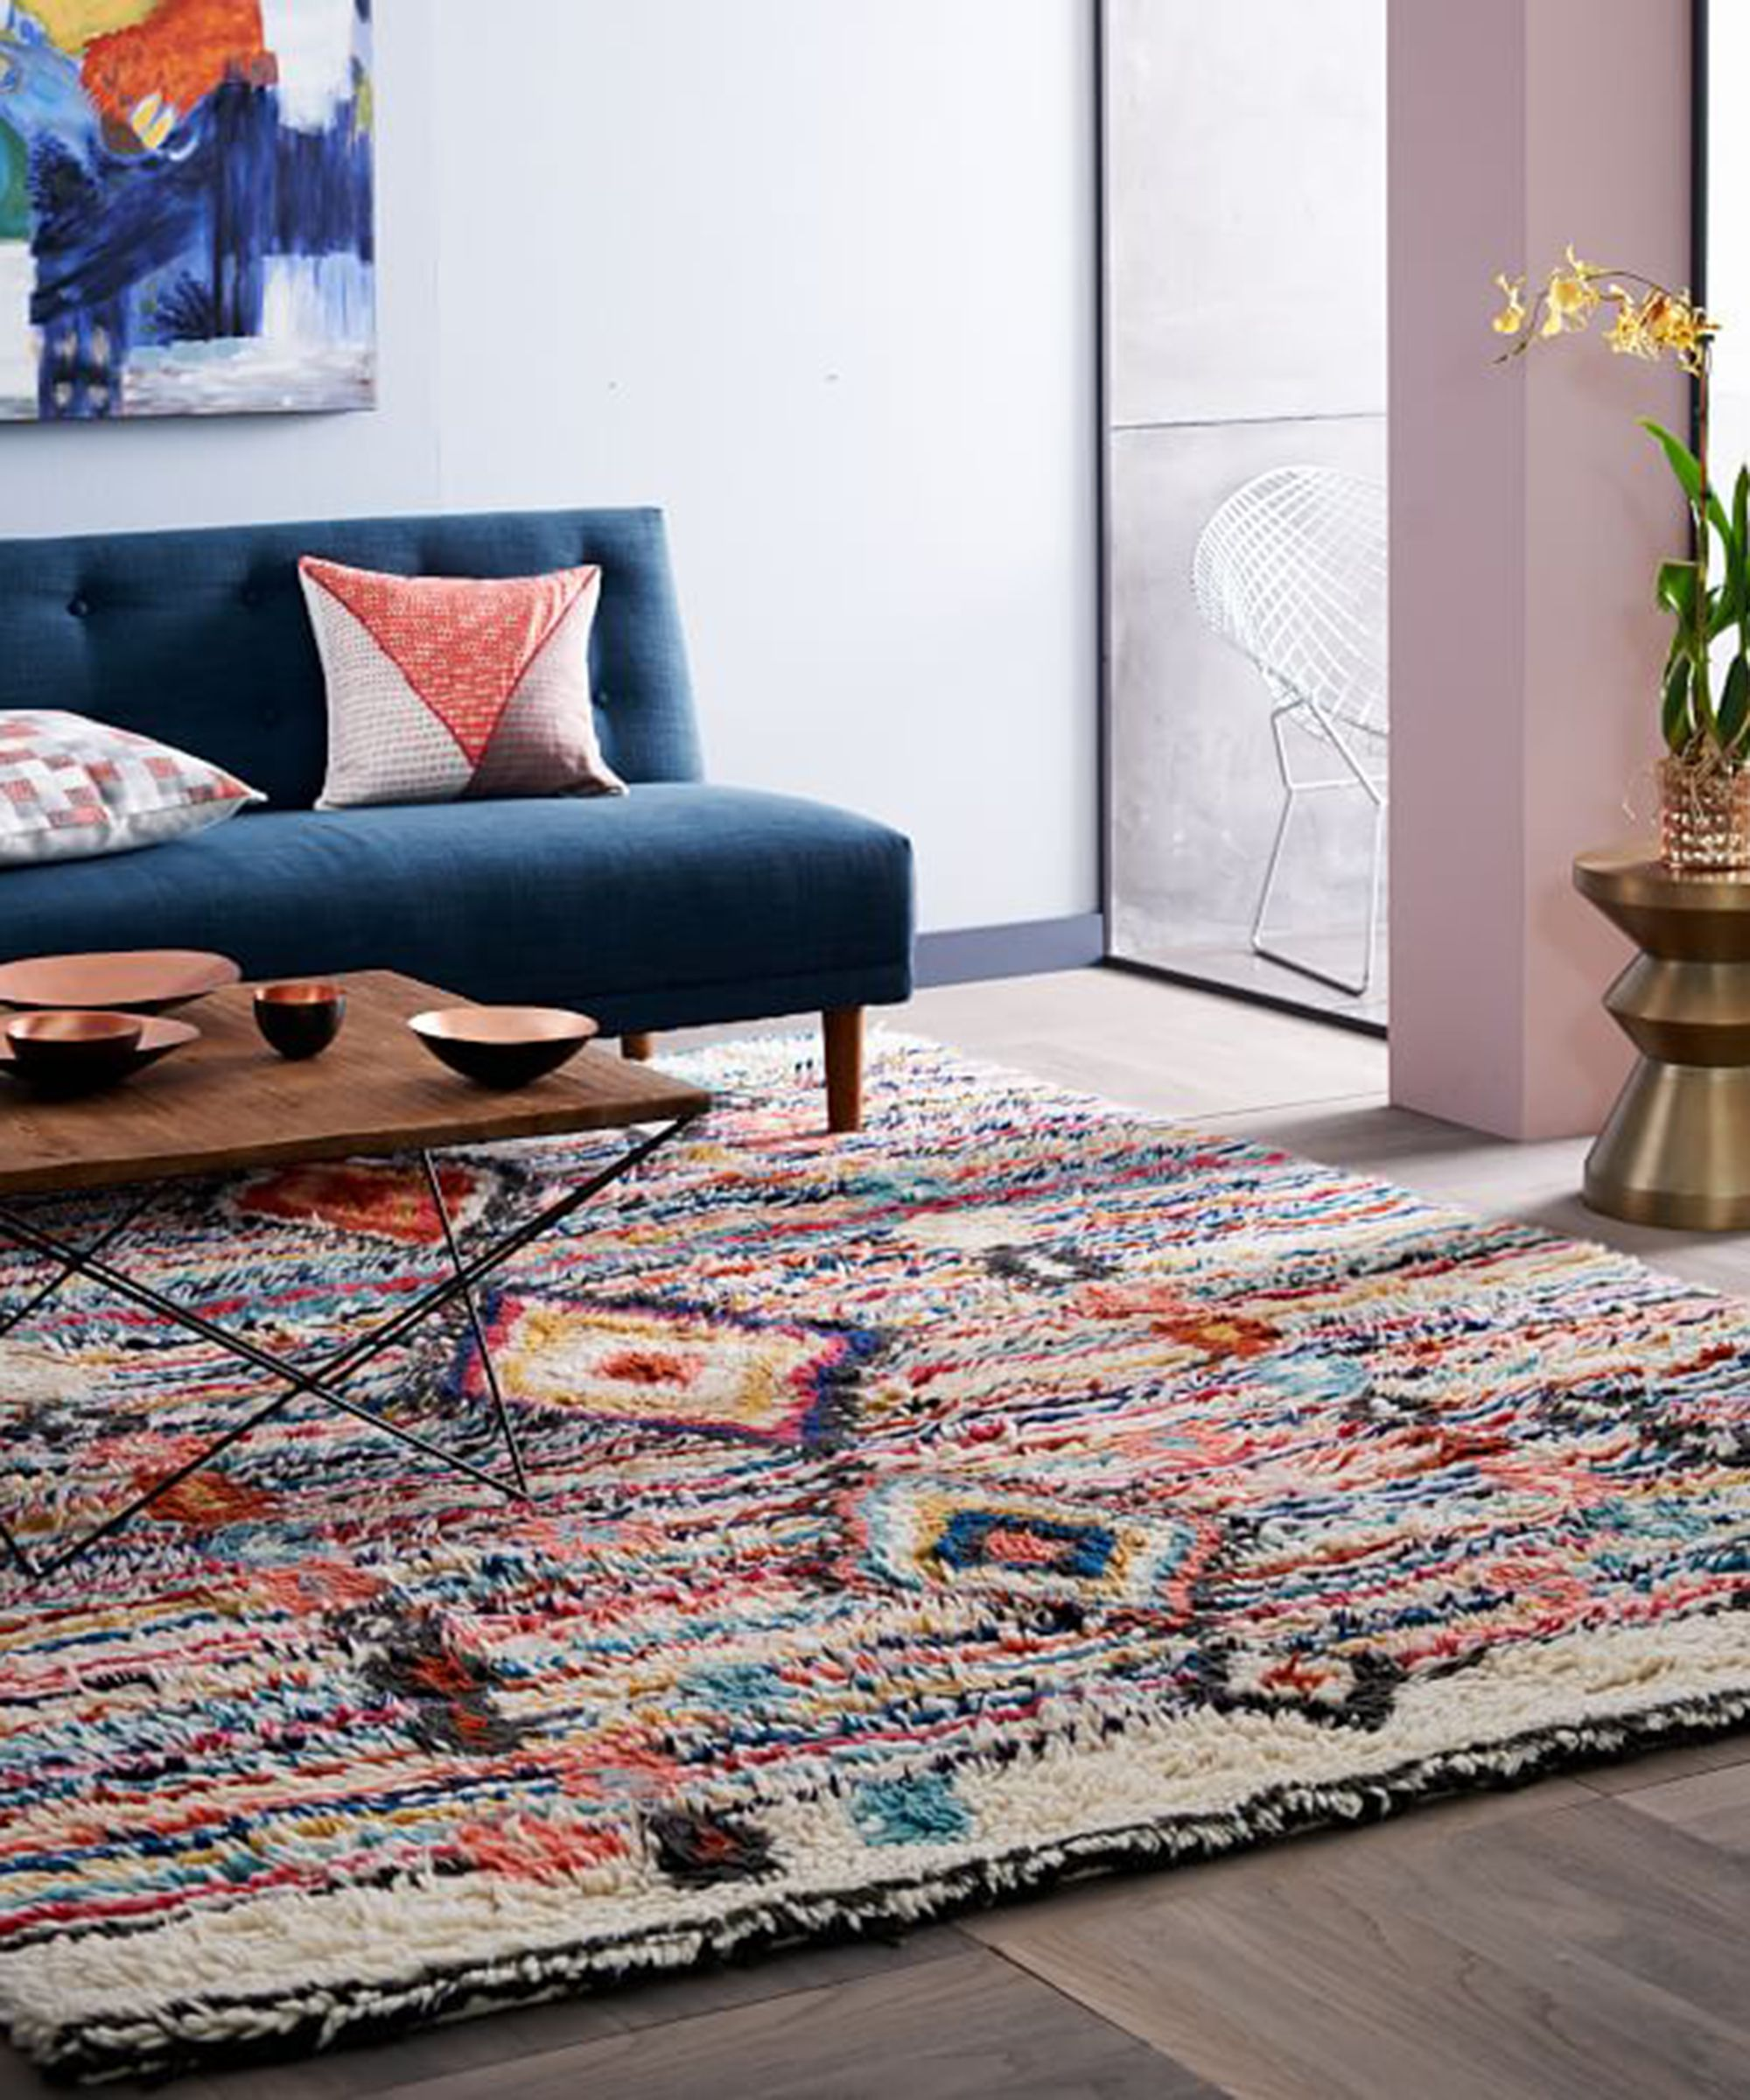 Cheap and quality carpets style on a budget: 10 sources for good, cheap rugs | apartment therapy UINTQGZ